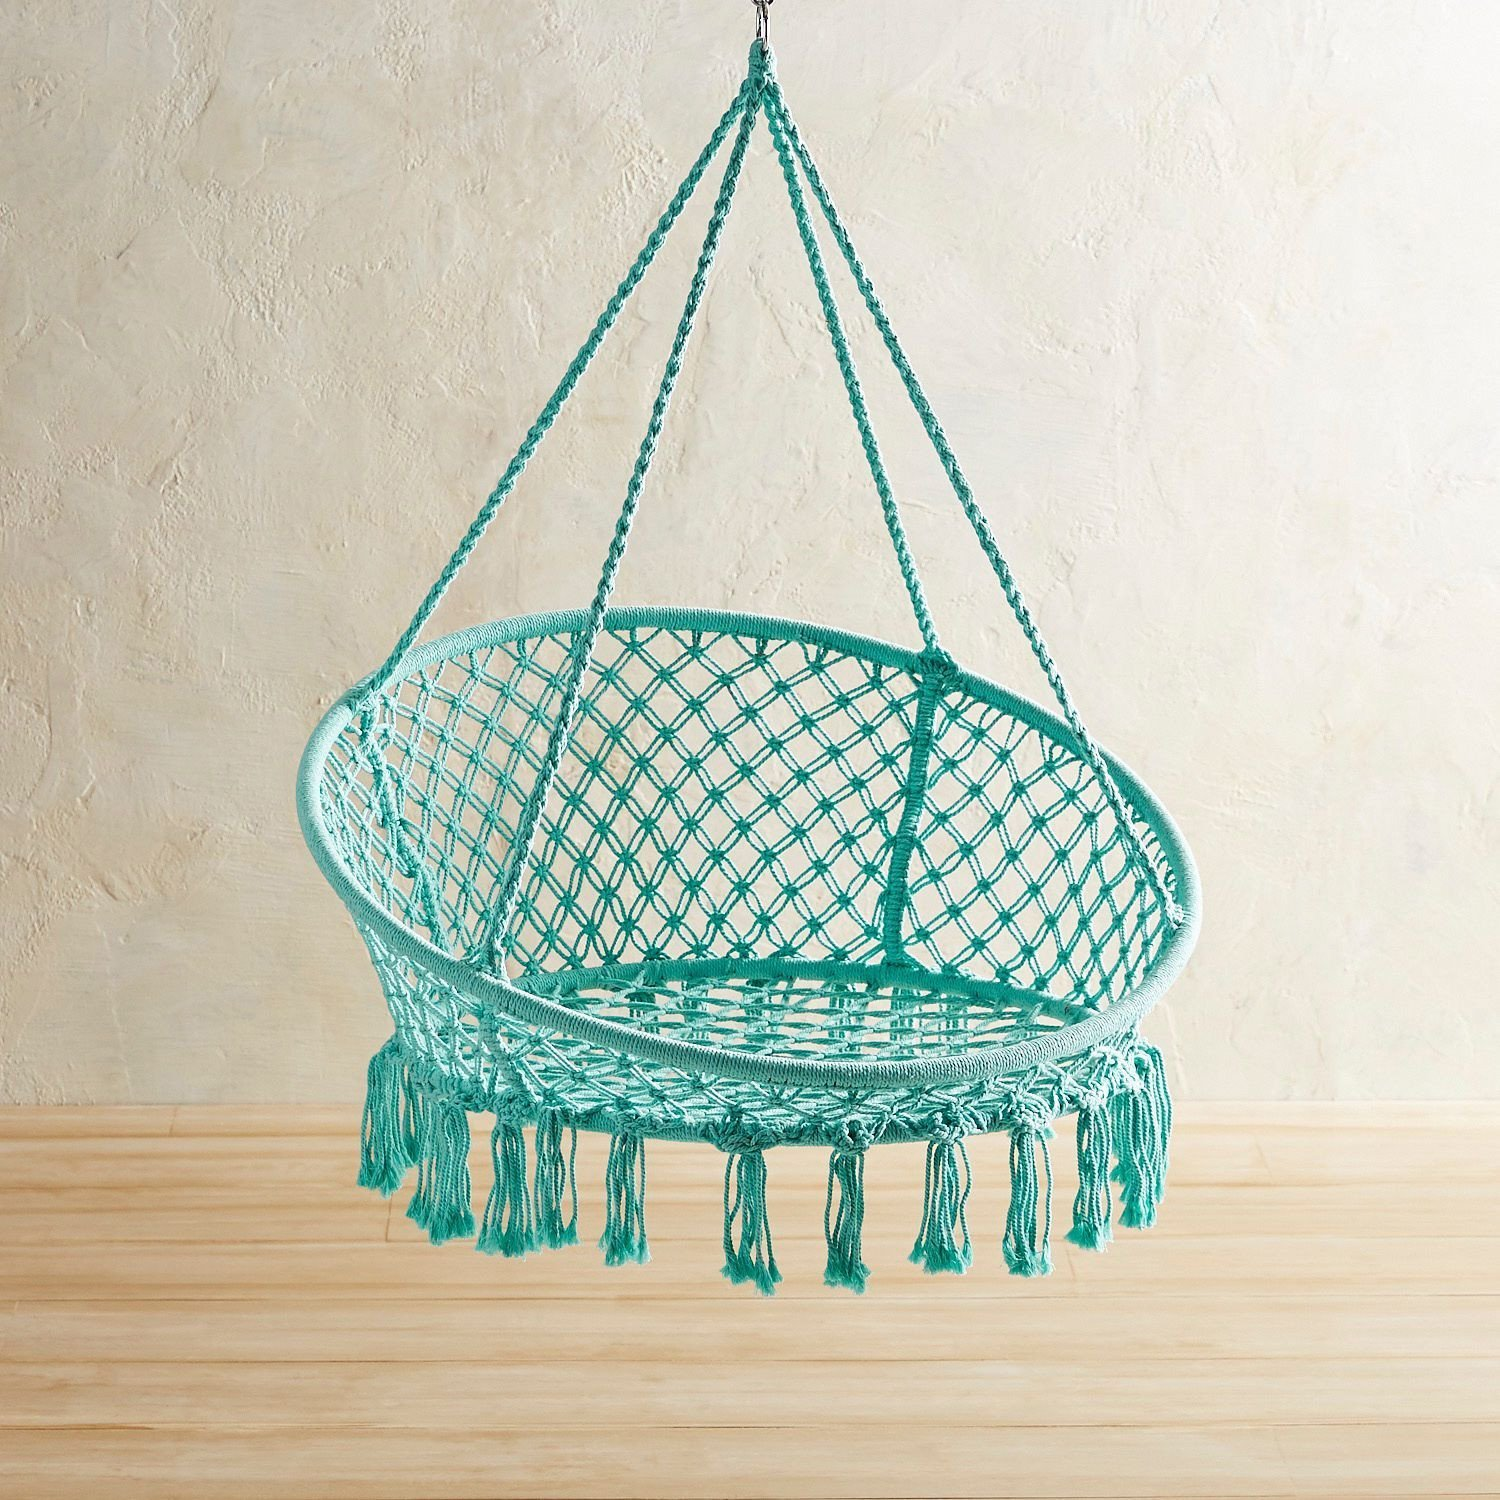 Hanging Chairs for Bedroom Awesome Turquoise Macrame Hanging Saucer Chair